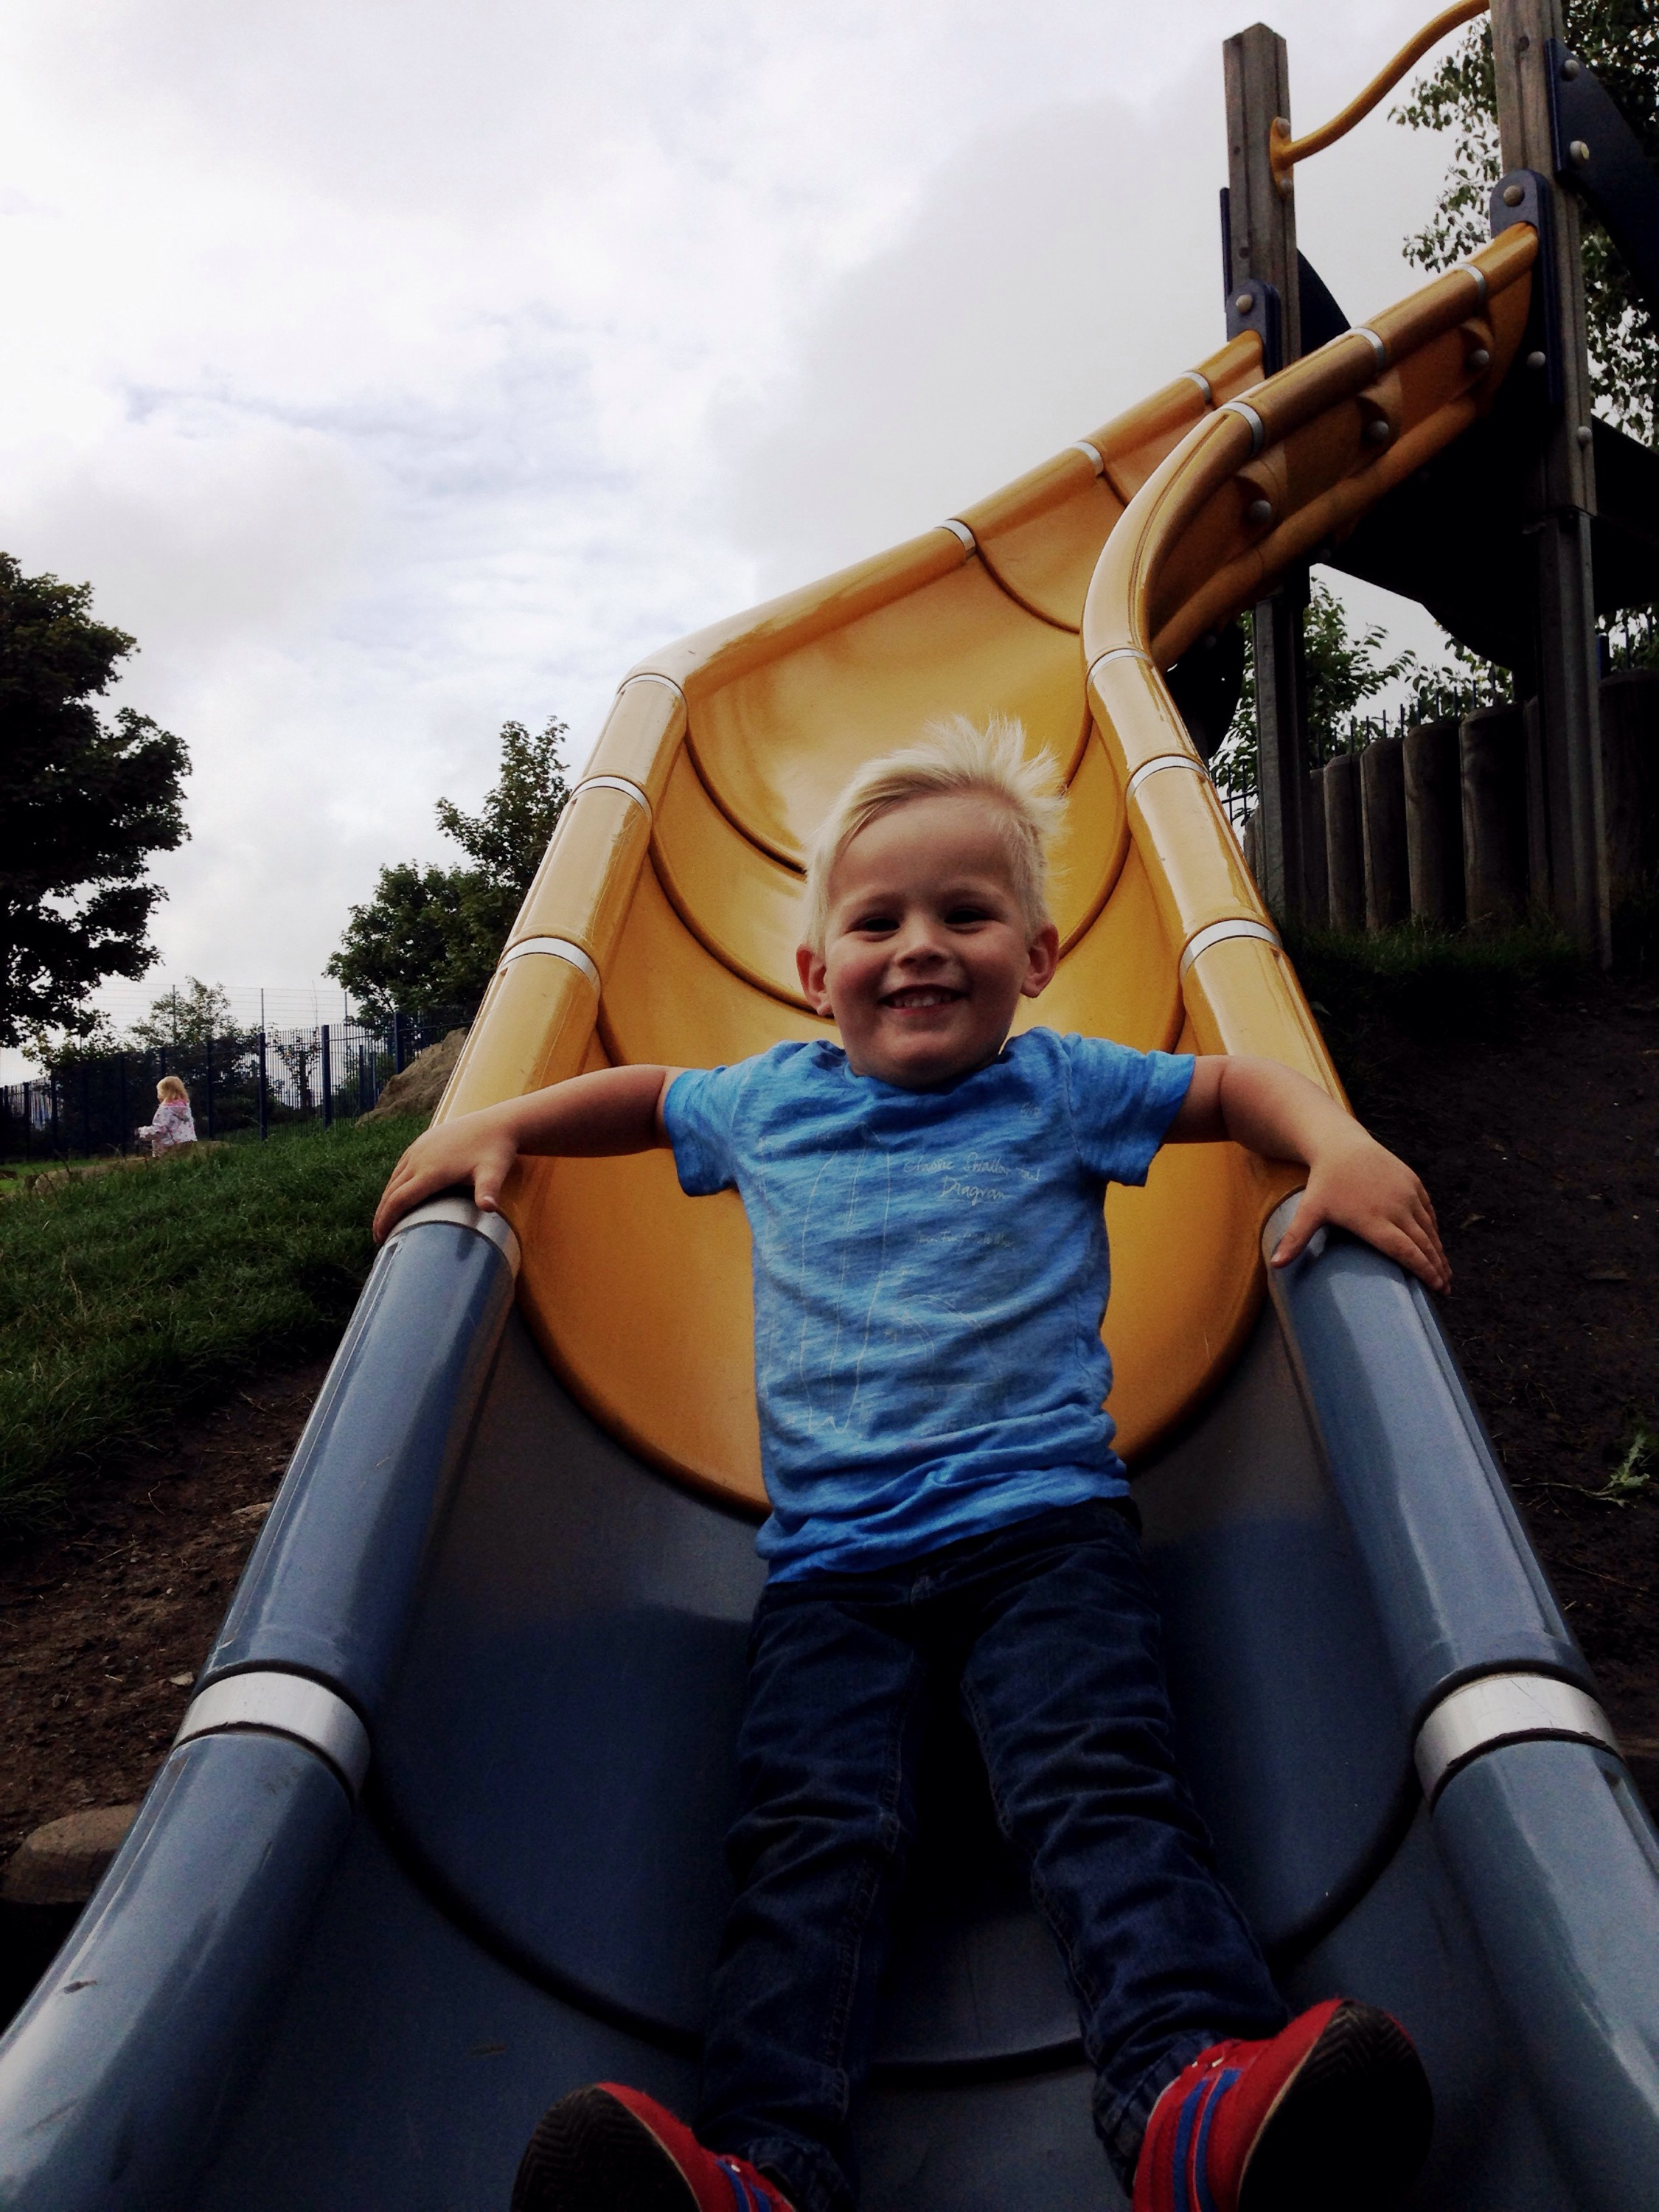 whitley bay park slide